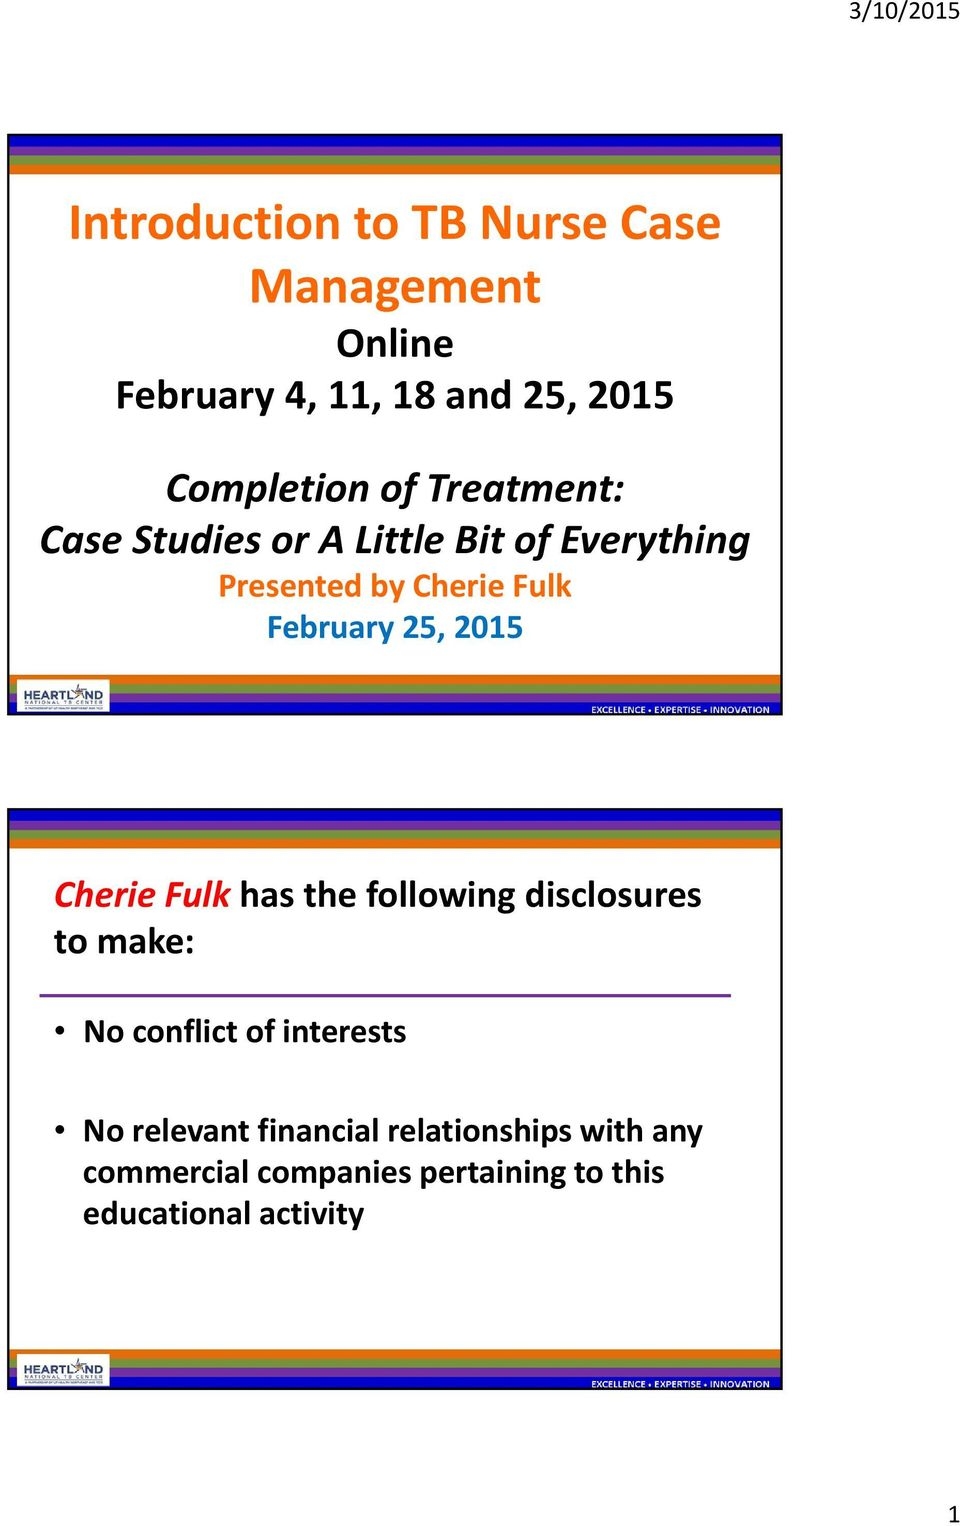 2015 Cherie Fulk has the following disclosures to make: No conflict of interests No relevant